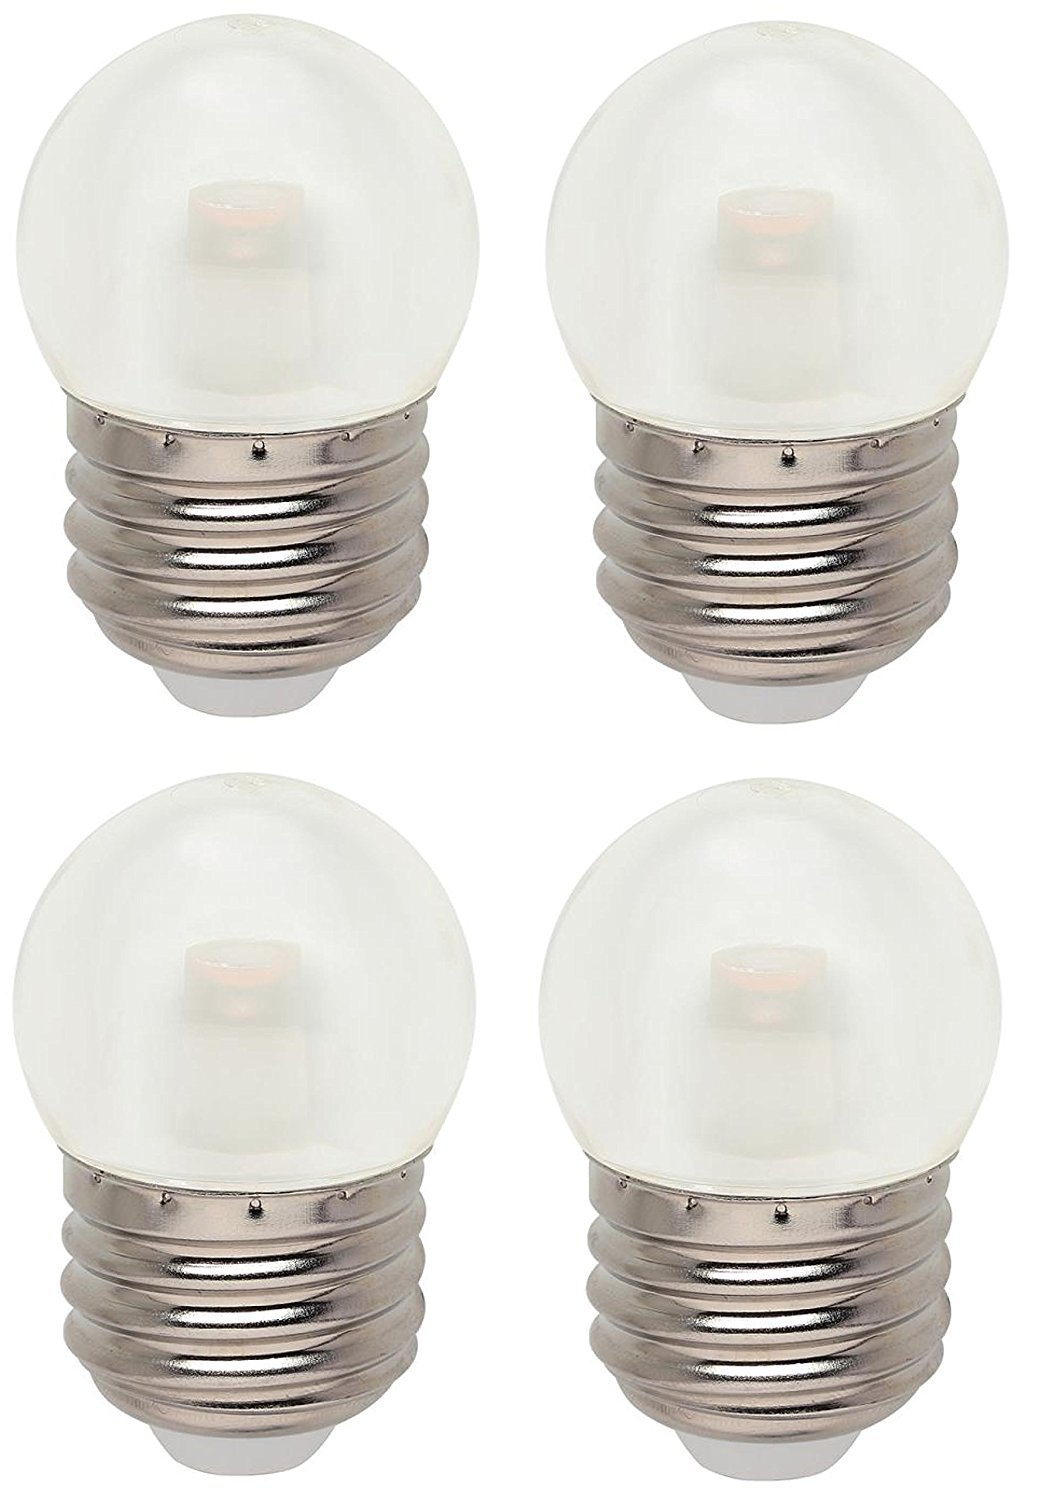 MiracleLED 602051 4-Inch 6-Pack Bug Light Amber